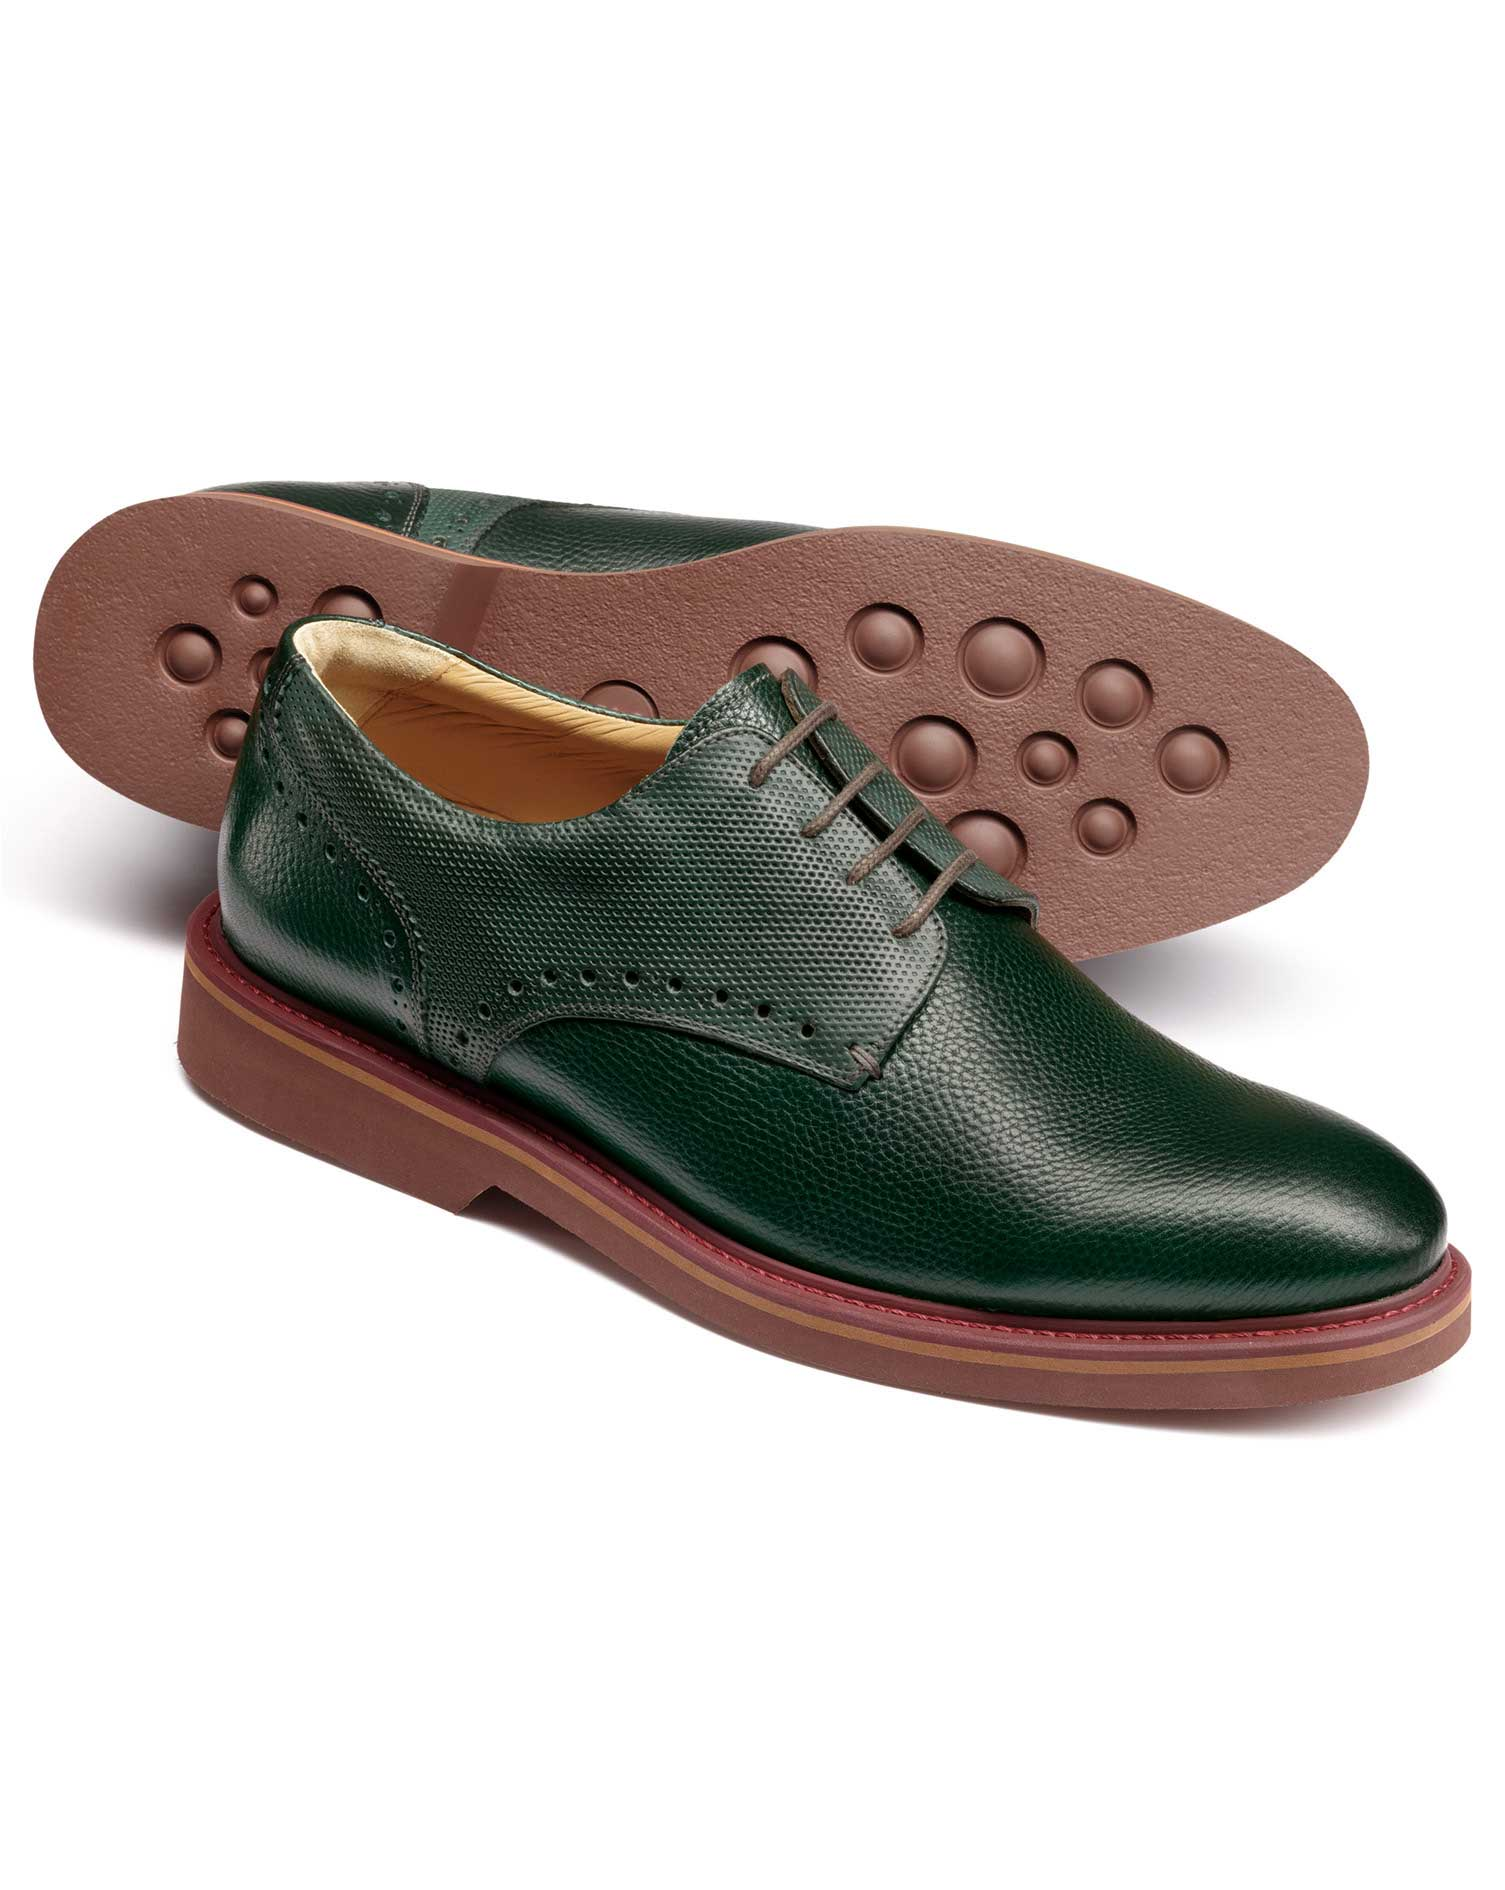 Green Extra Lightweight Derby Shoes Size 6 R by Charles Tyrwhitt